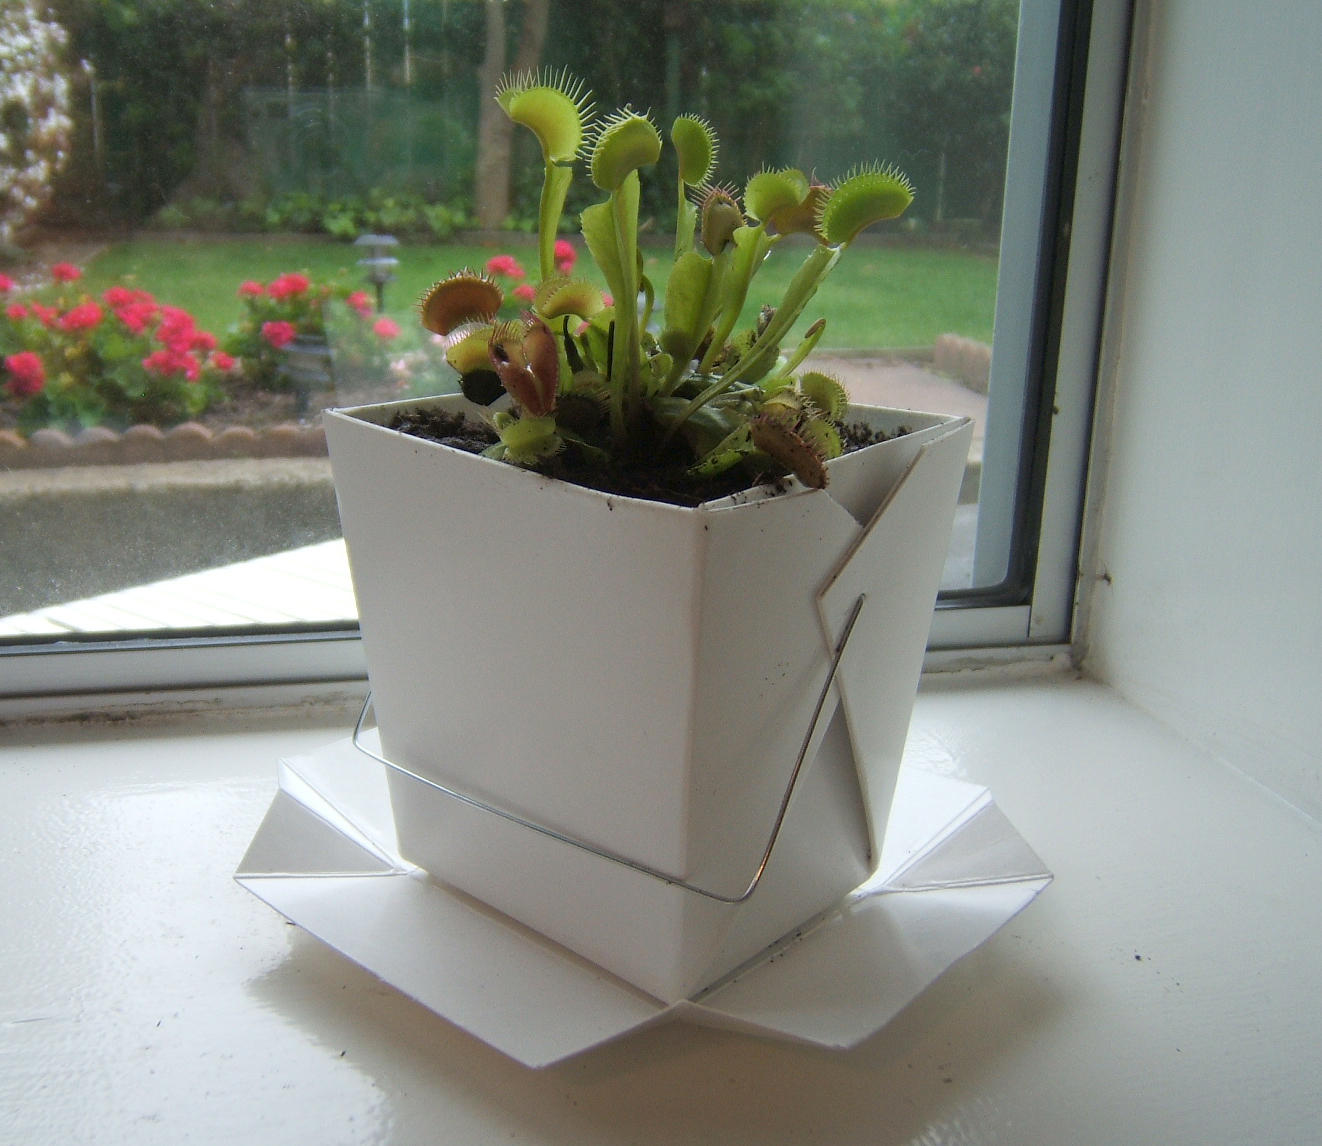 Recycled Takeout Container Planter